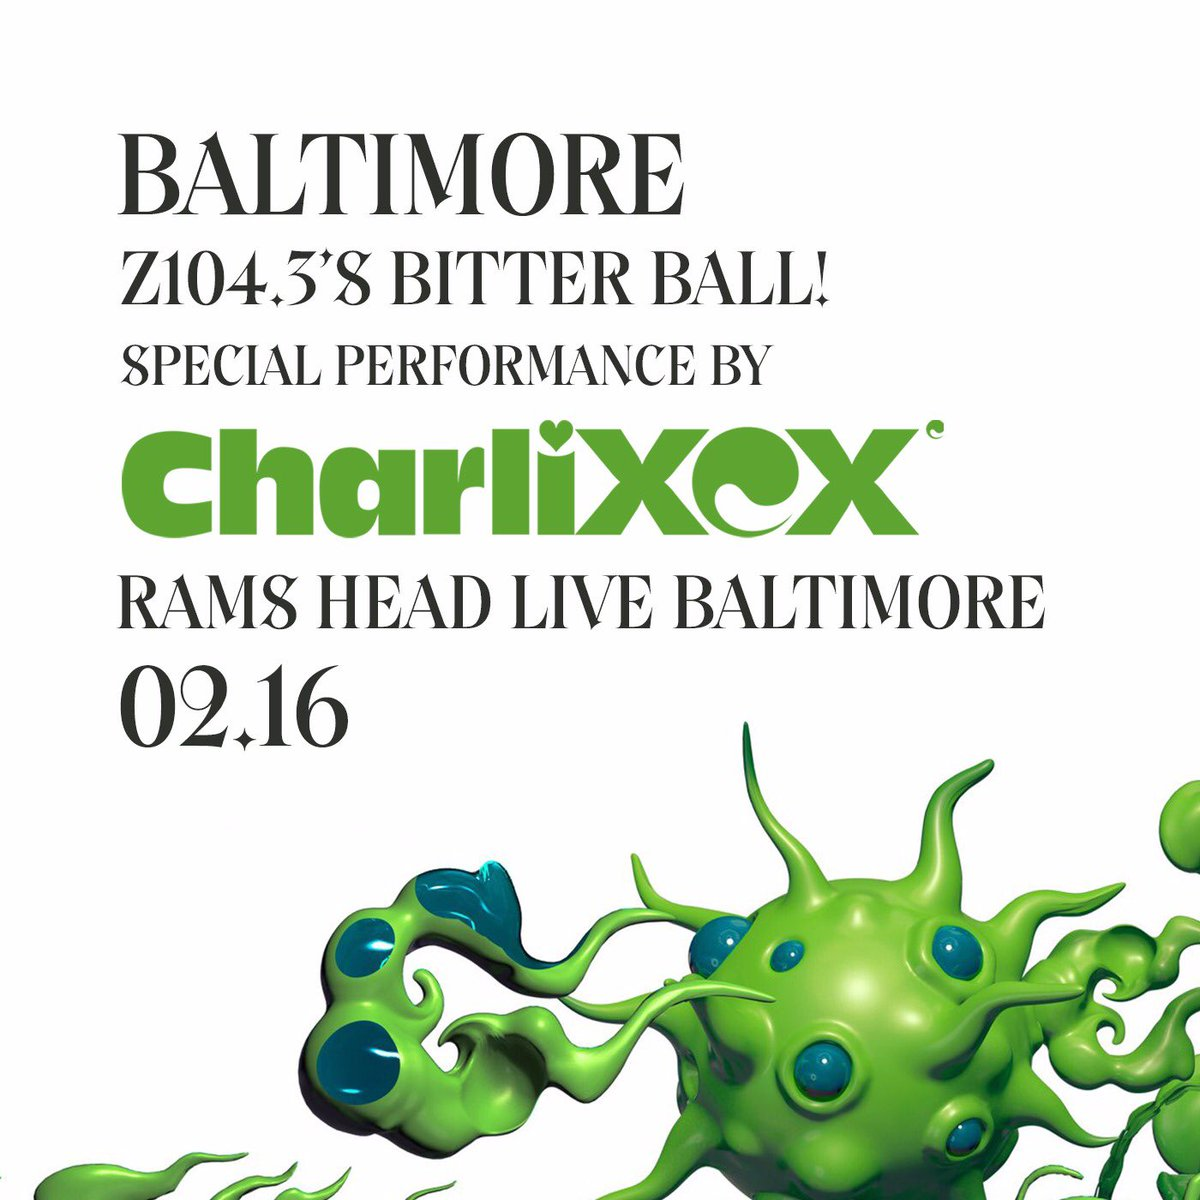 ????????BALTIMORE ANGELS!!! FREE SHOW TOMORROW NIGHT AT RAMS HEAD LIVE!!! FIRST COME FIRST SERVED!!!!!! ???????? https://t.co/er56URosSx